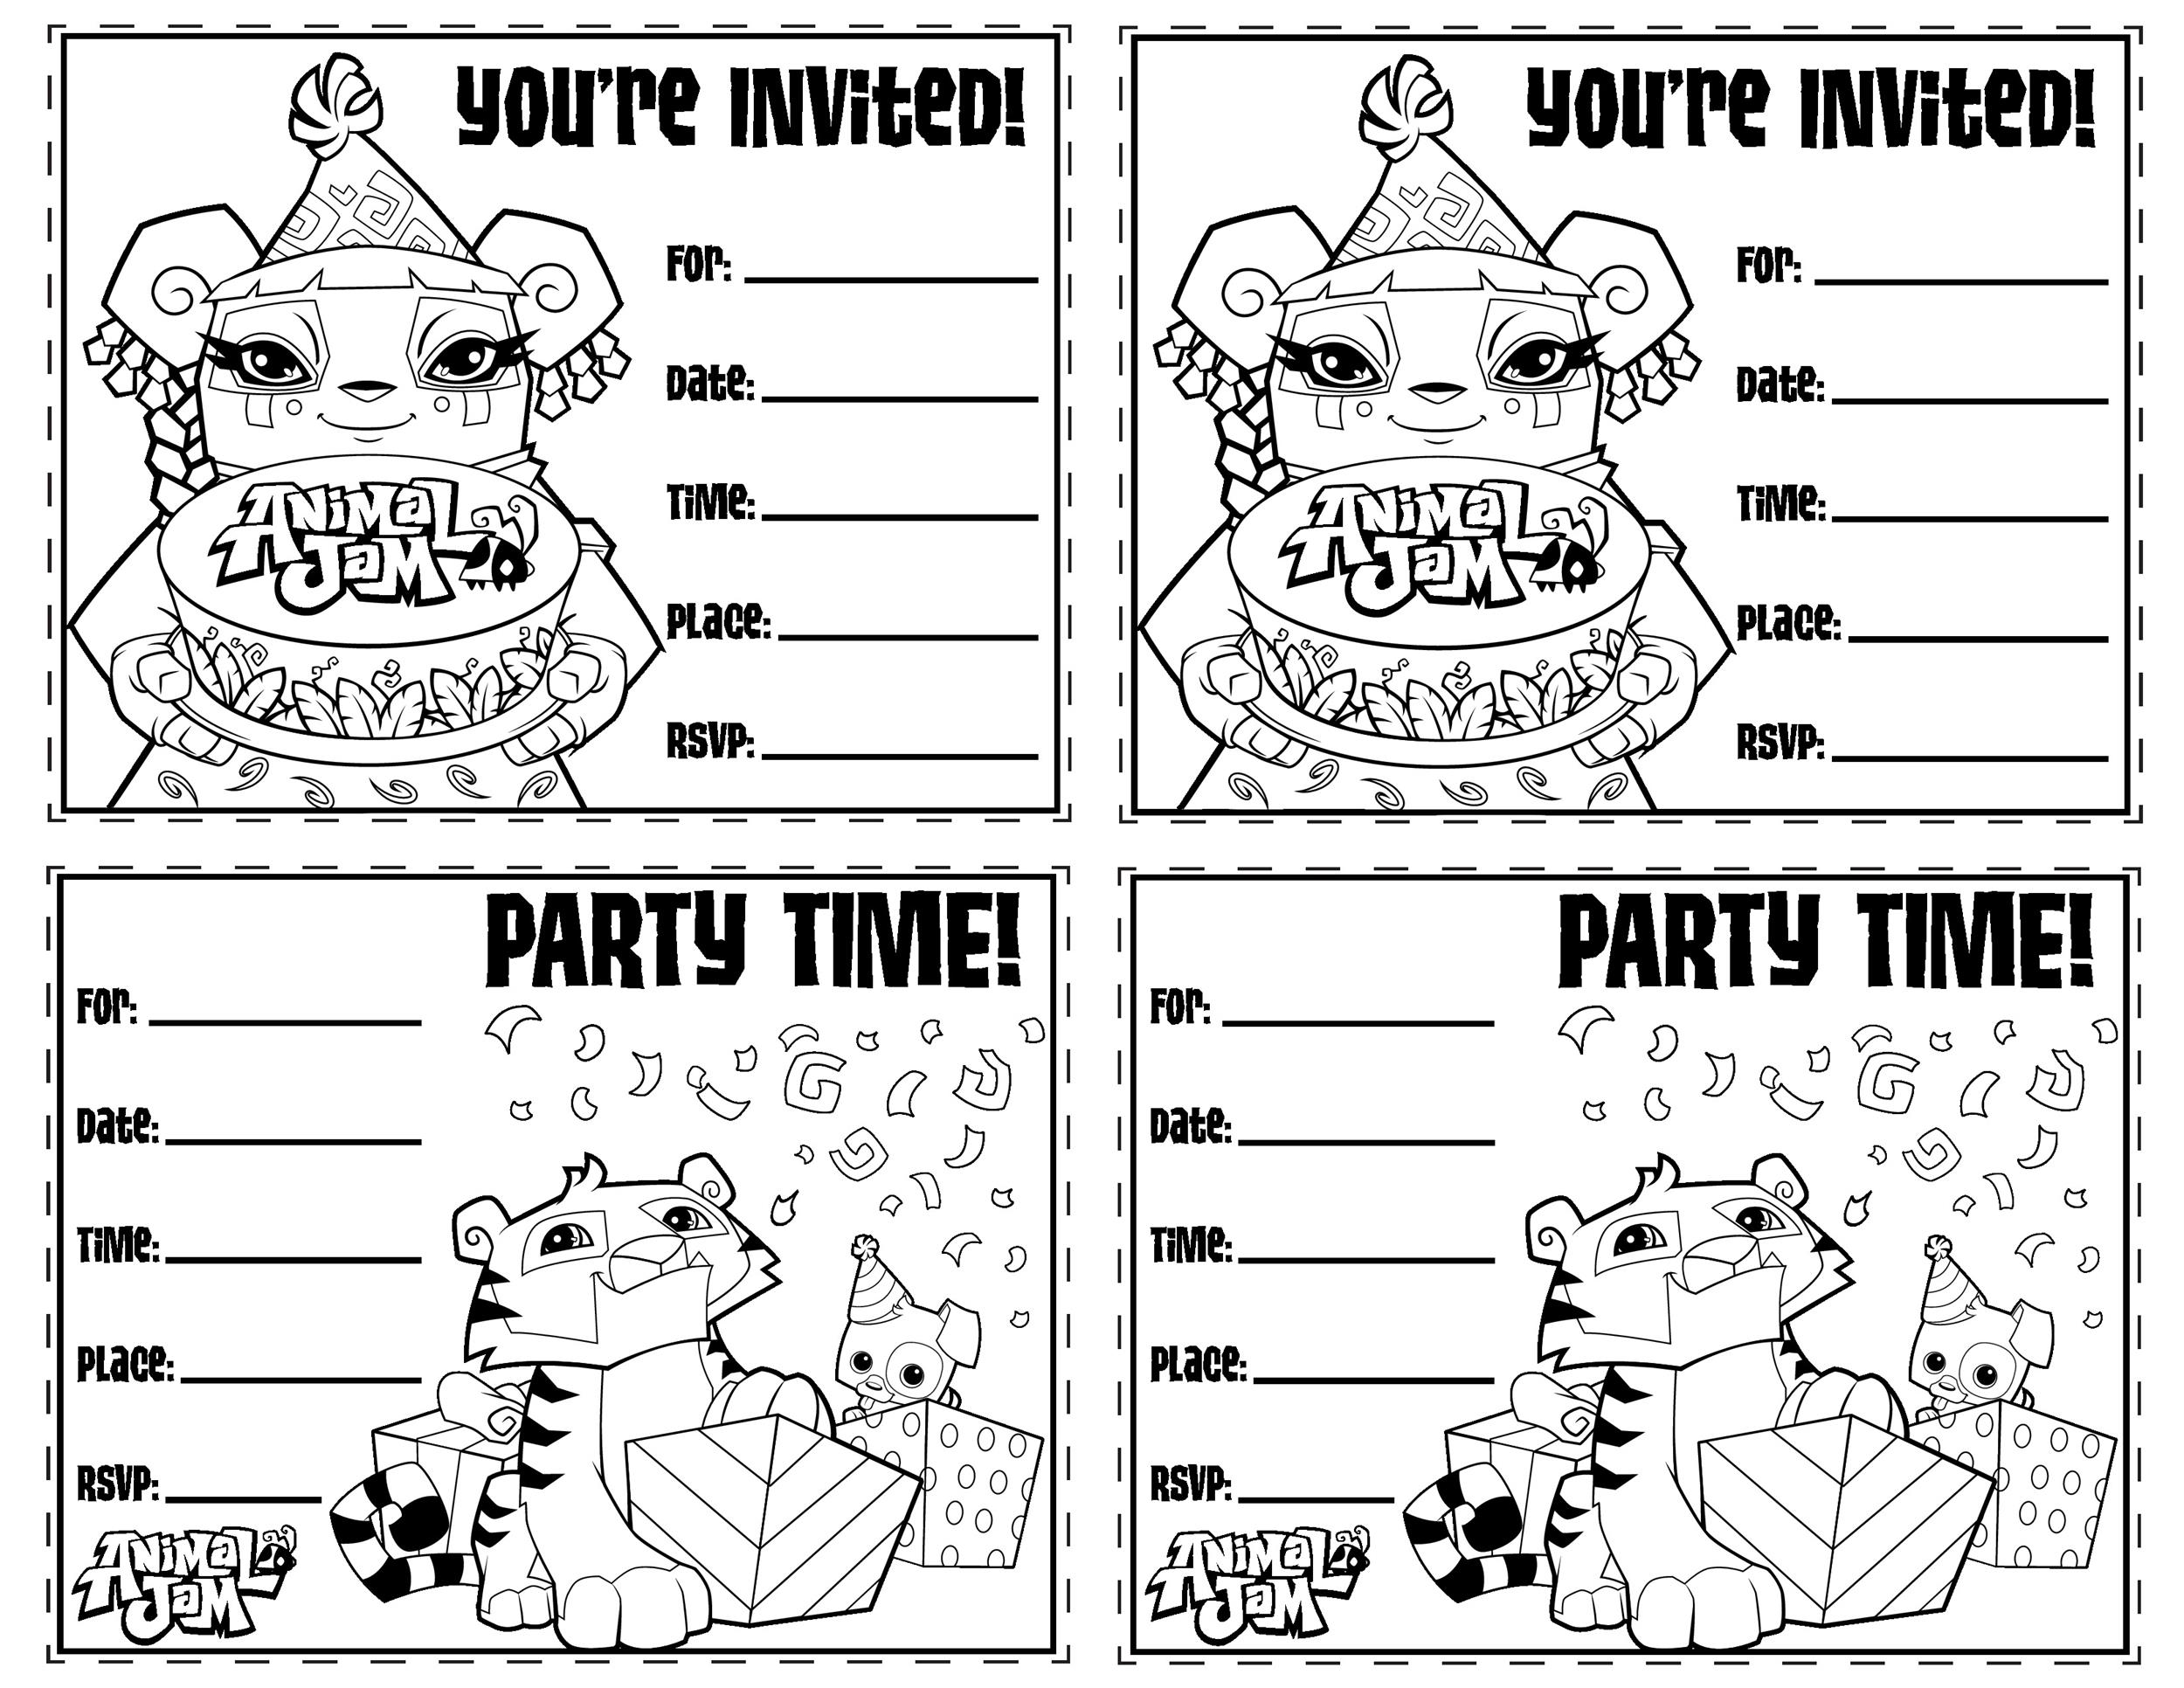 40 free birthday party invitation templates template lab printable birthday invitation template 02 stopboris Choice Image